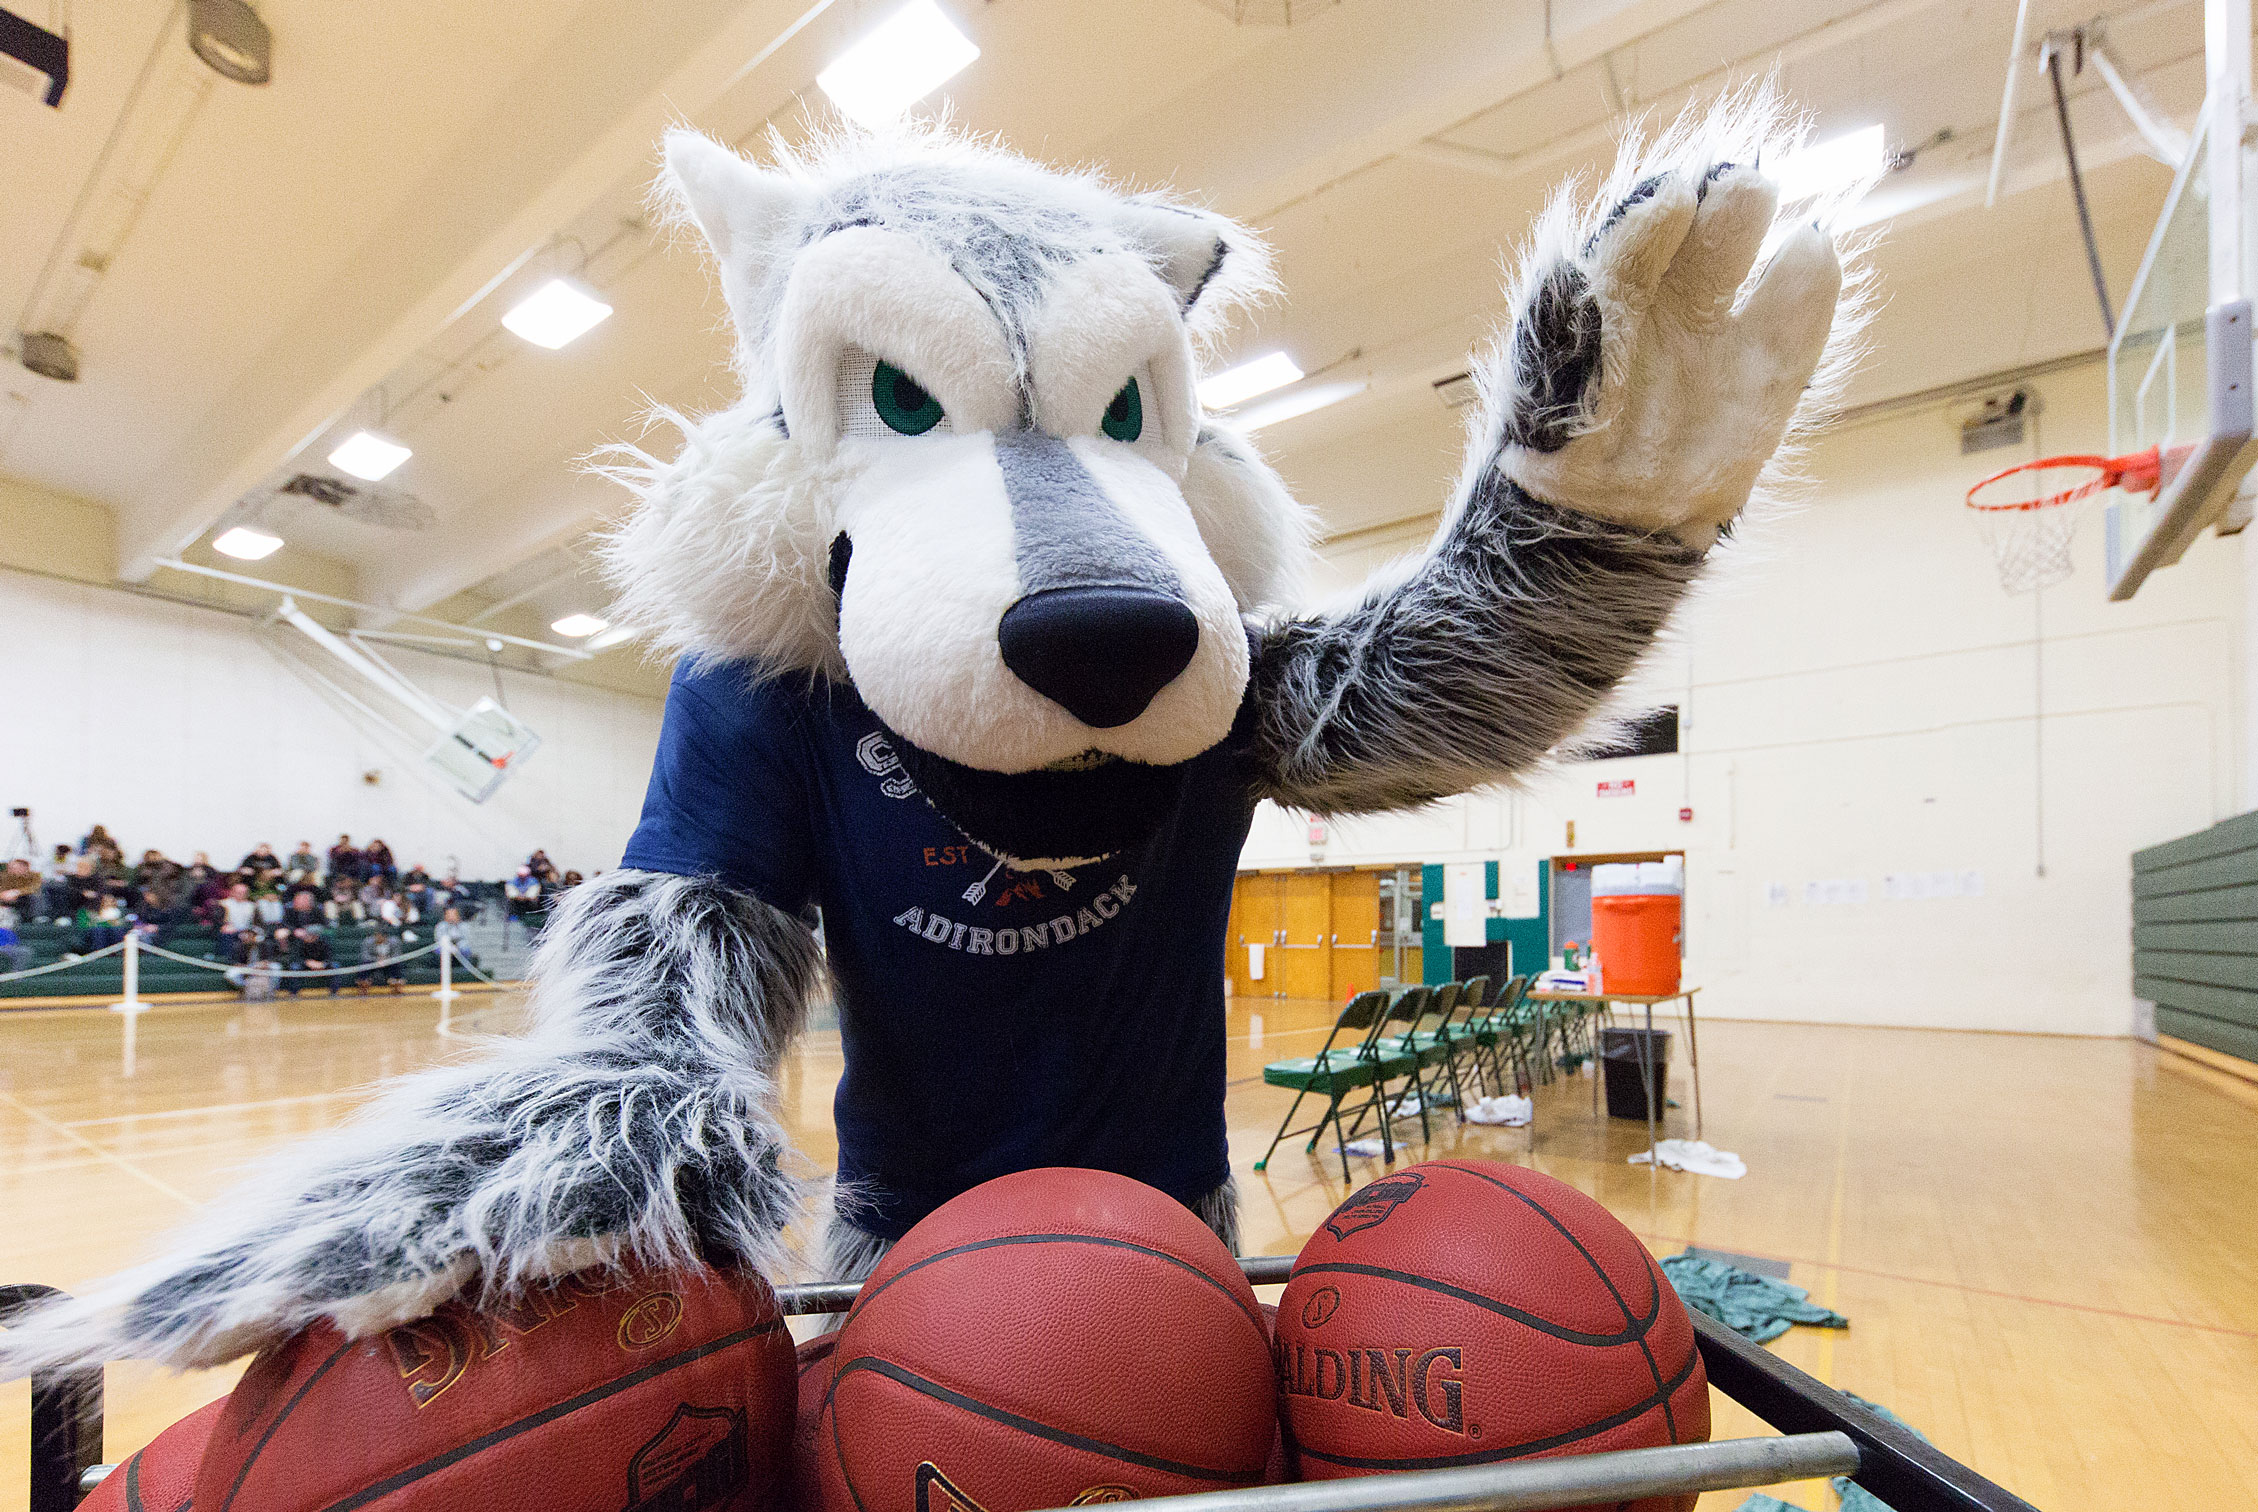 Eddy Rondack, the school mascot in the gym